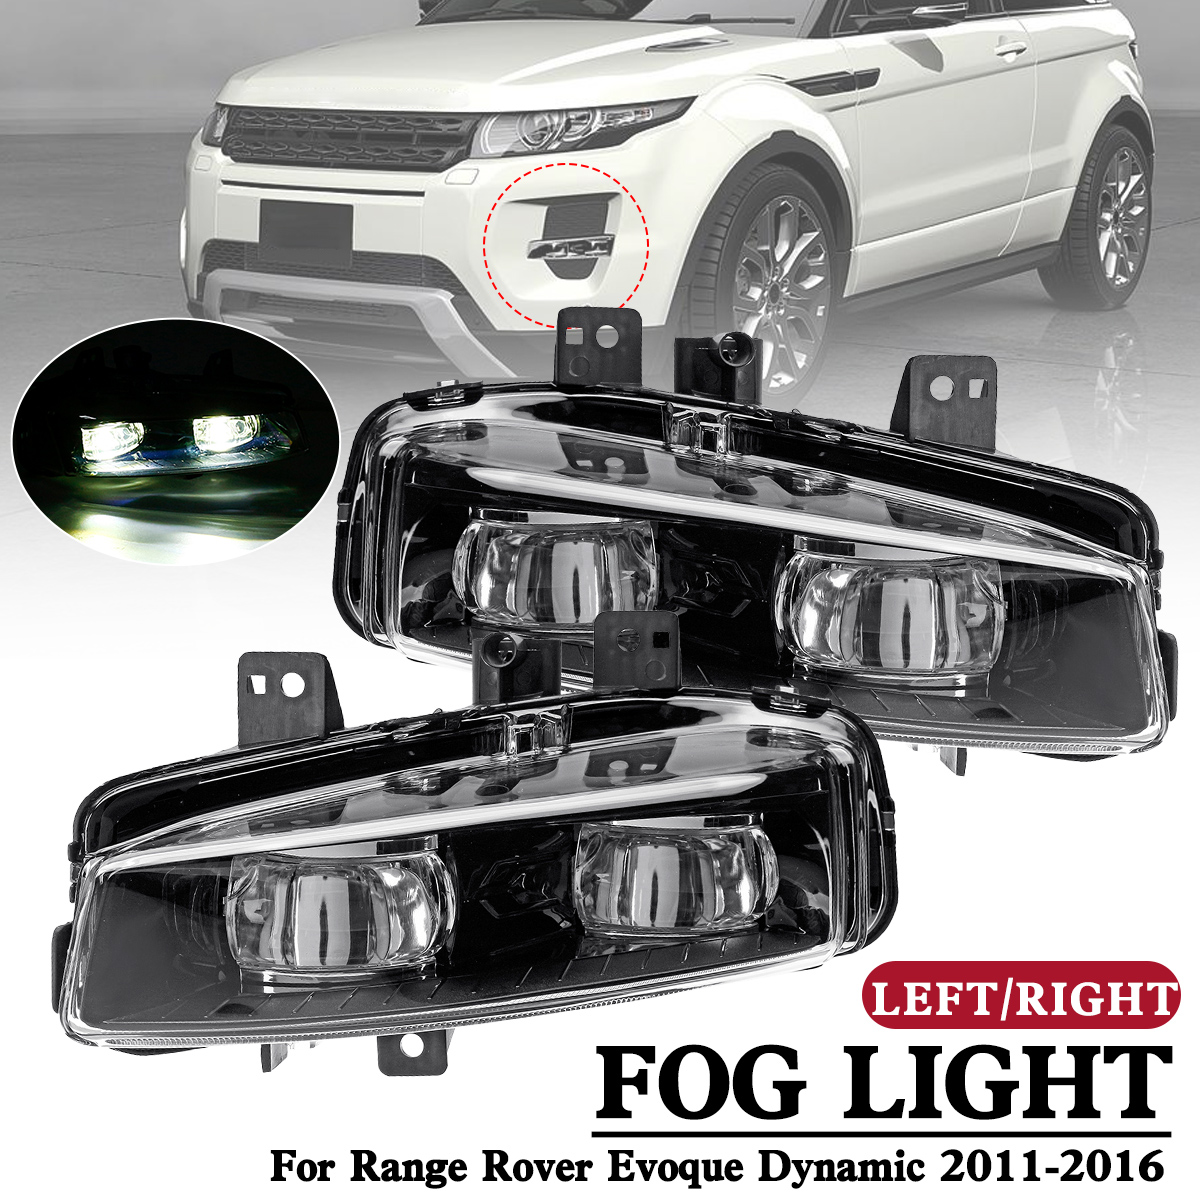 1 Pair Car front left Right Bumper Fog Light Lamp with bulb Replacement for Range Rover Evoque Dynamic 2011 2012 2013 14-16